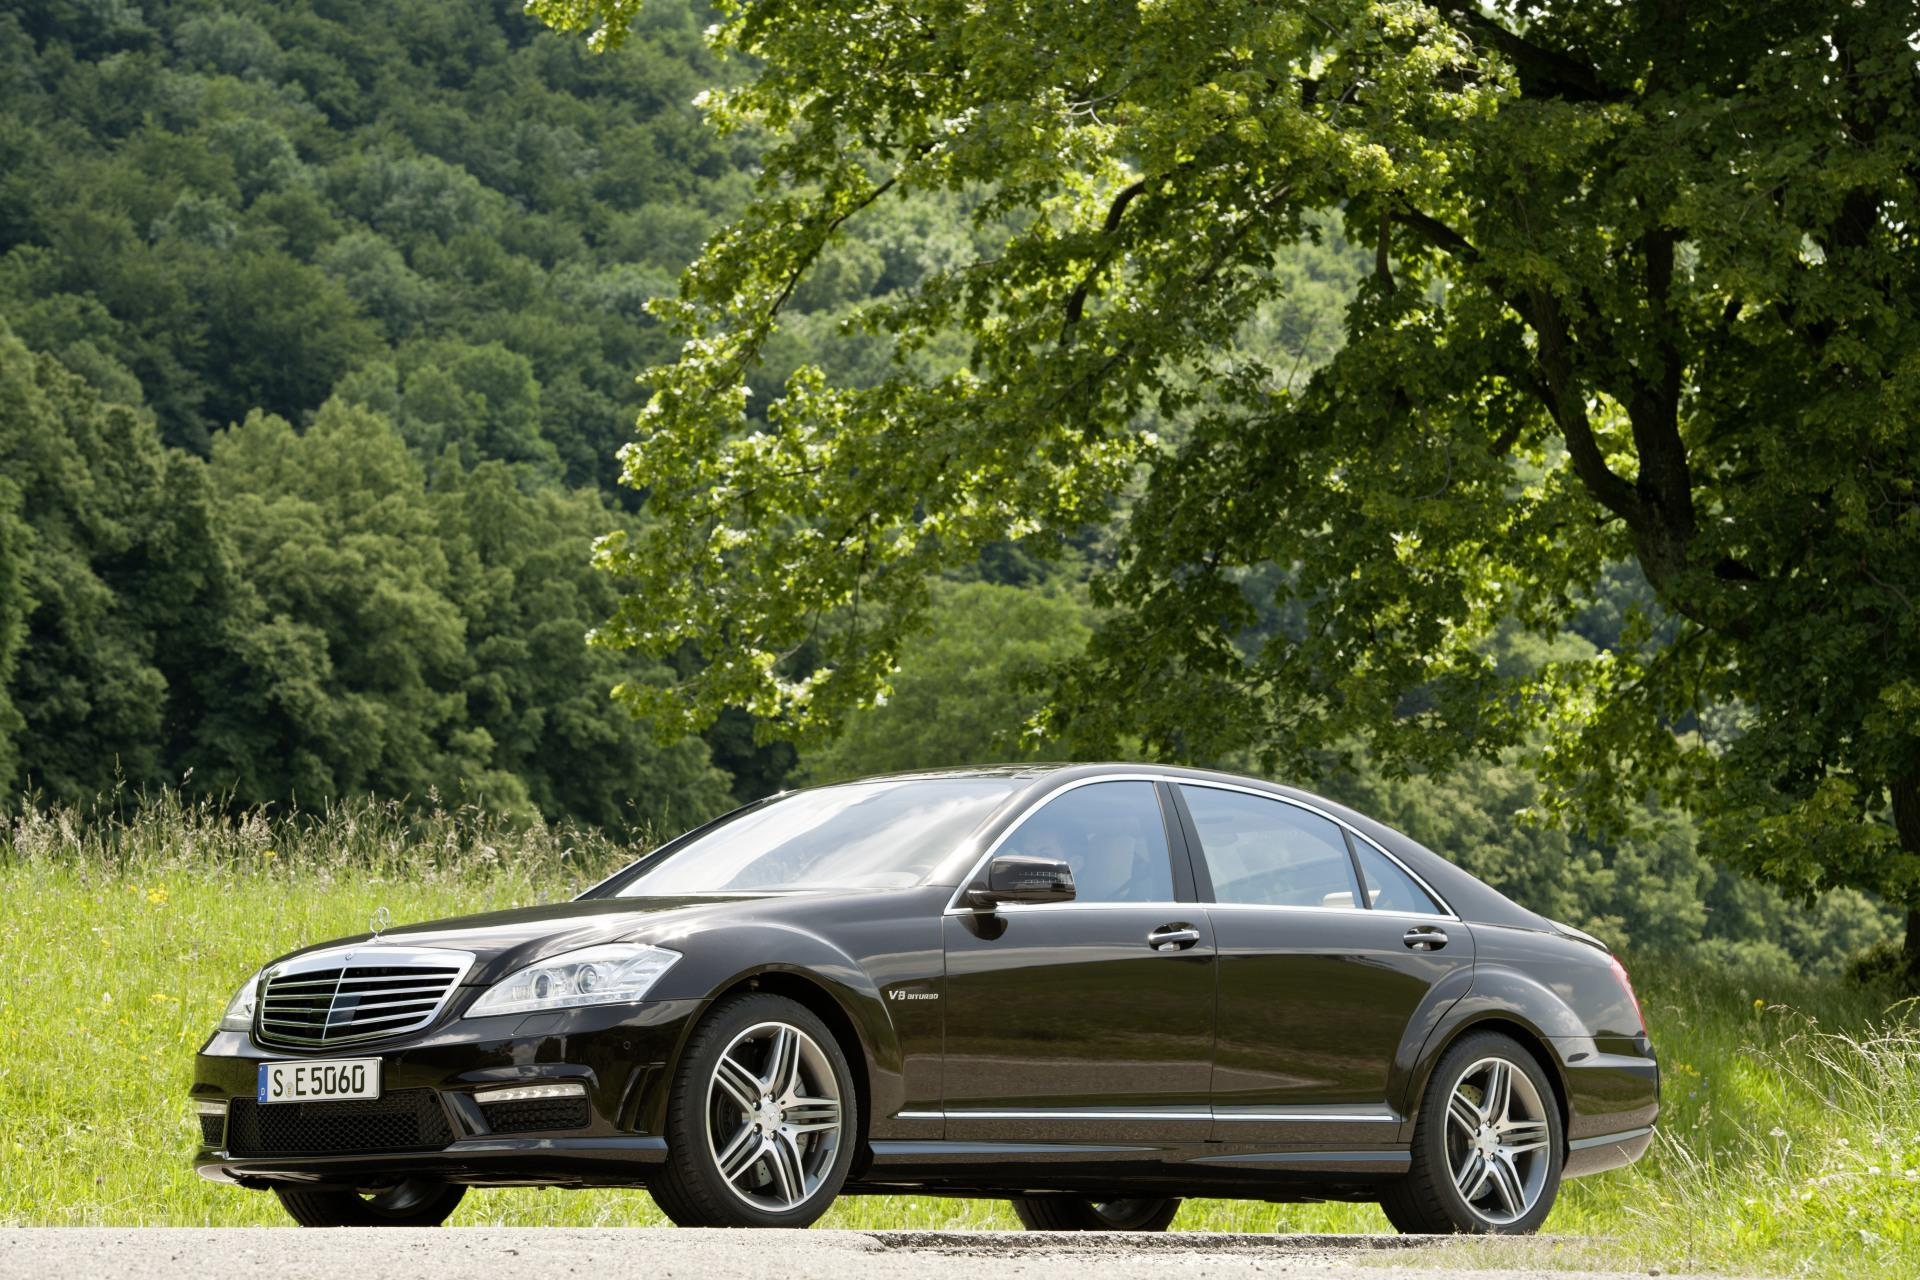 2011 mercedes benz s class news and information. Black Bedroom Furniture Sets. Home Design Ideas